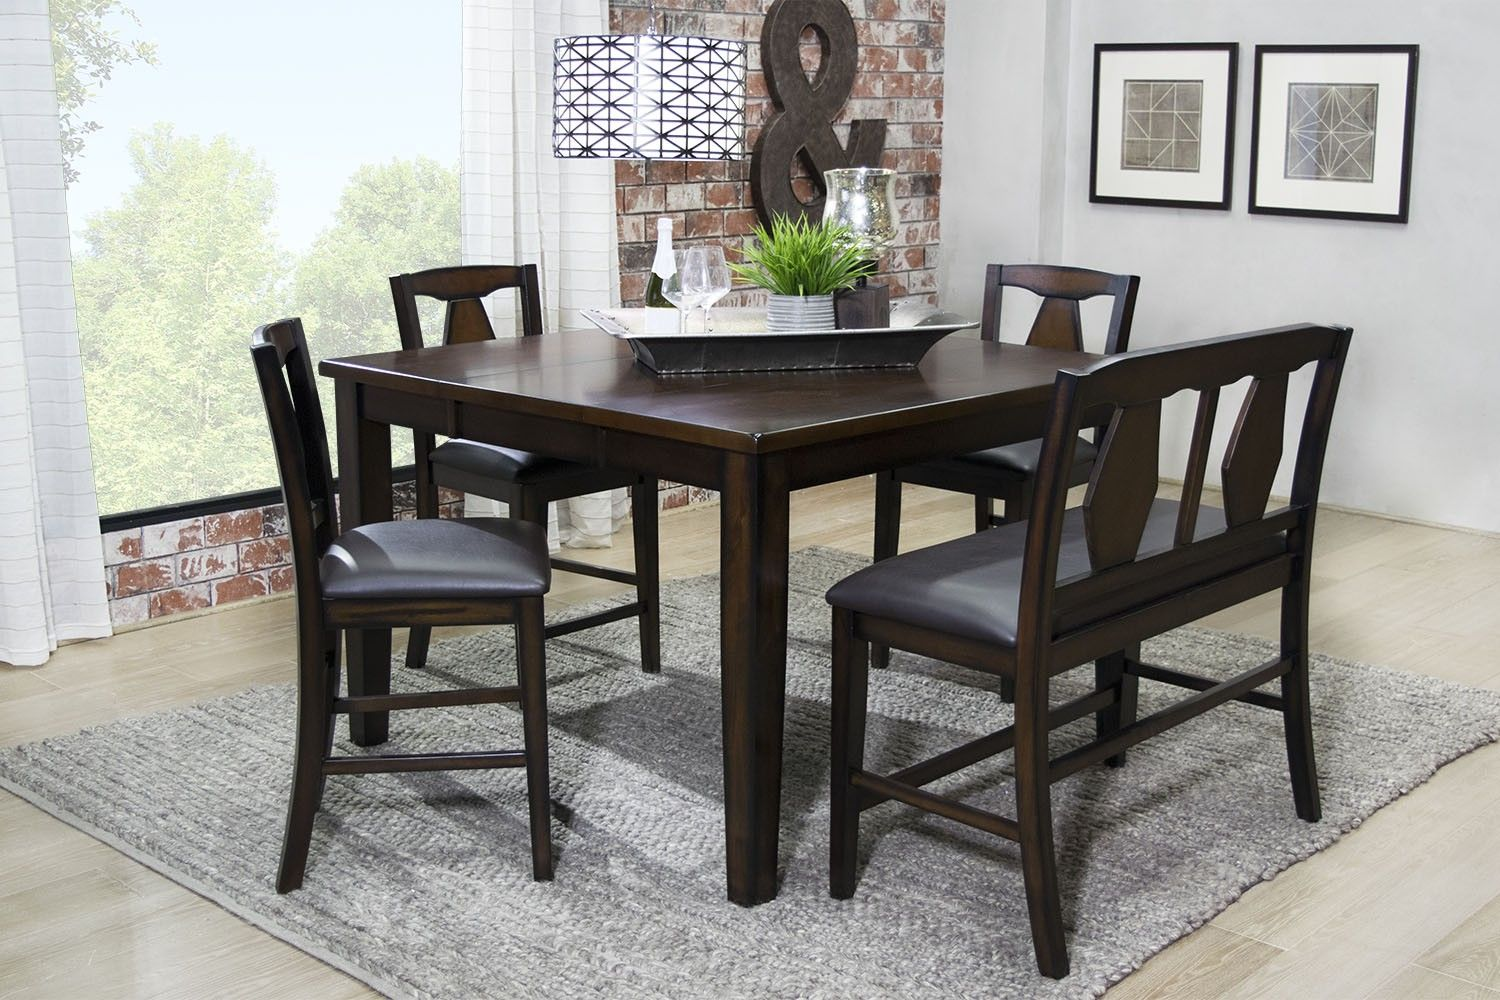 Charmant Mor Furniture For Less: The Napa Dining Room | Mor Furniture For Less